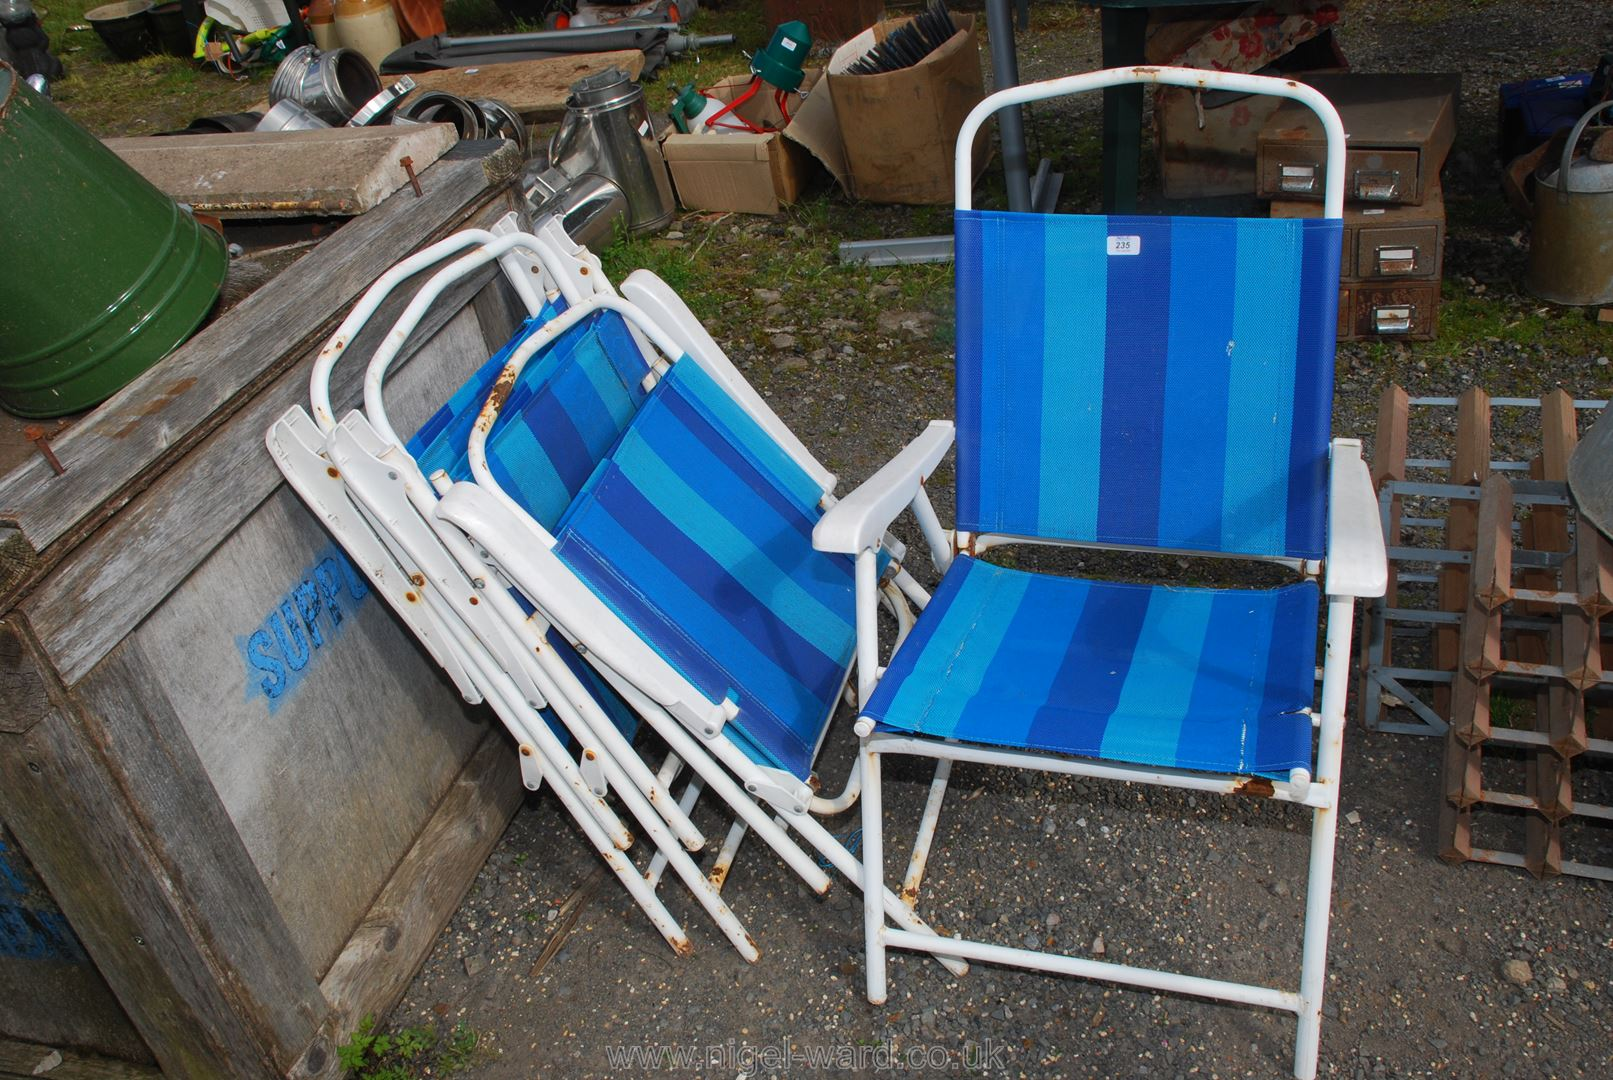 Four folding picnic chairs.